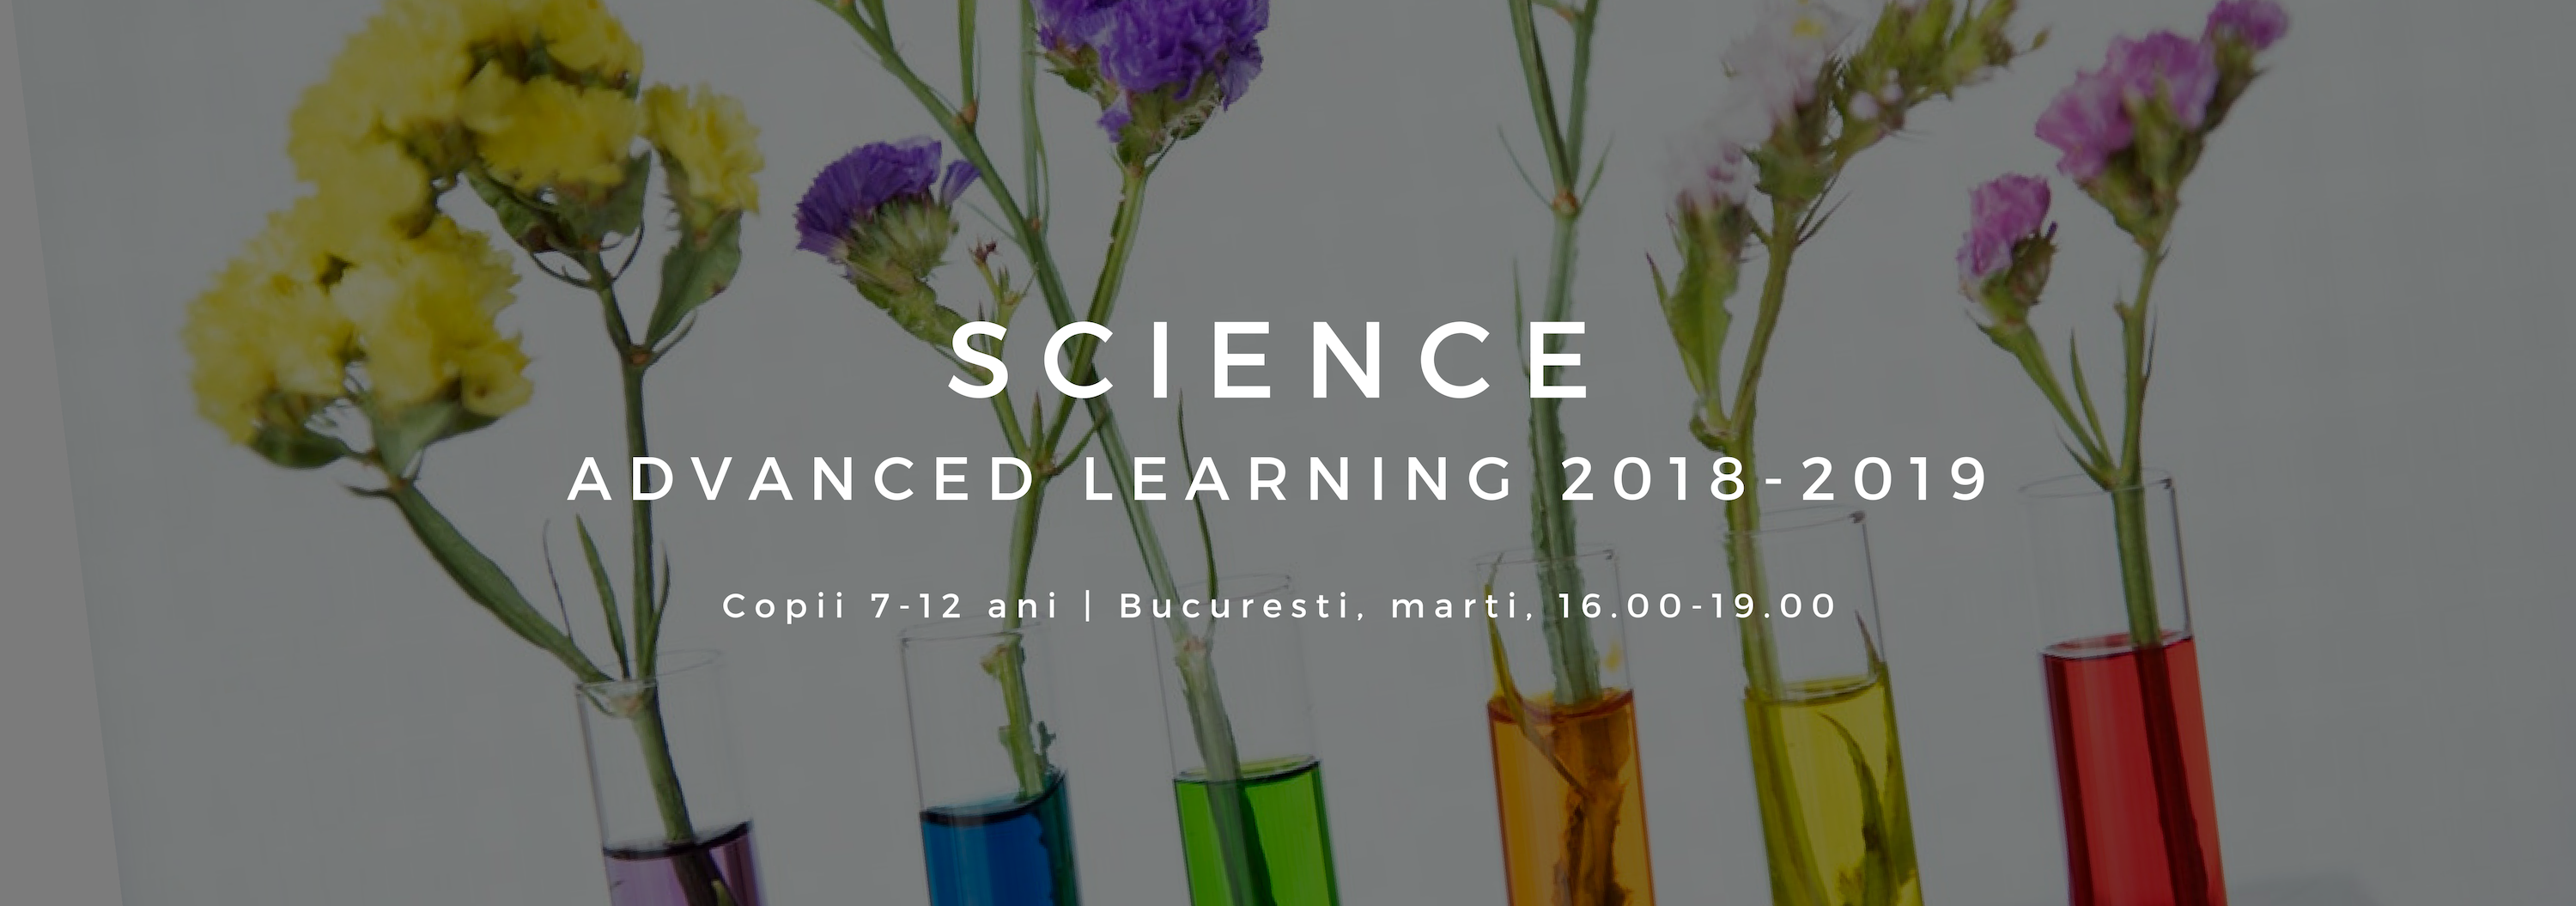 Science Advanced Learning